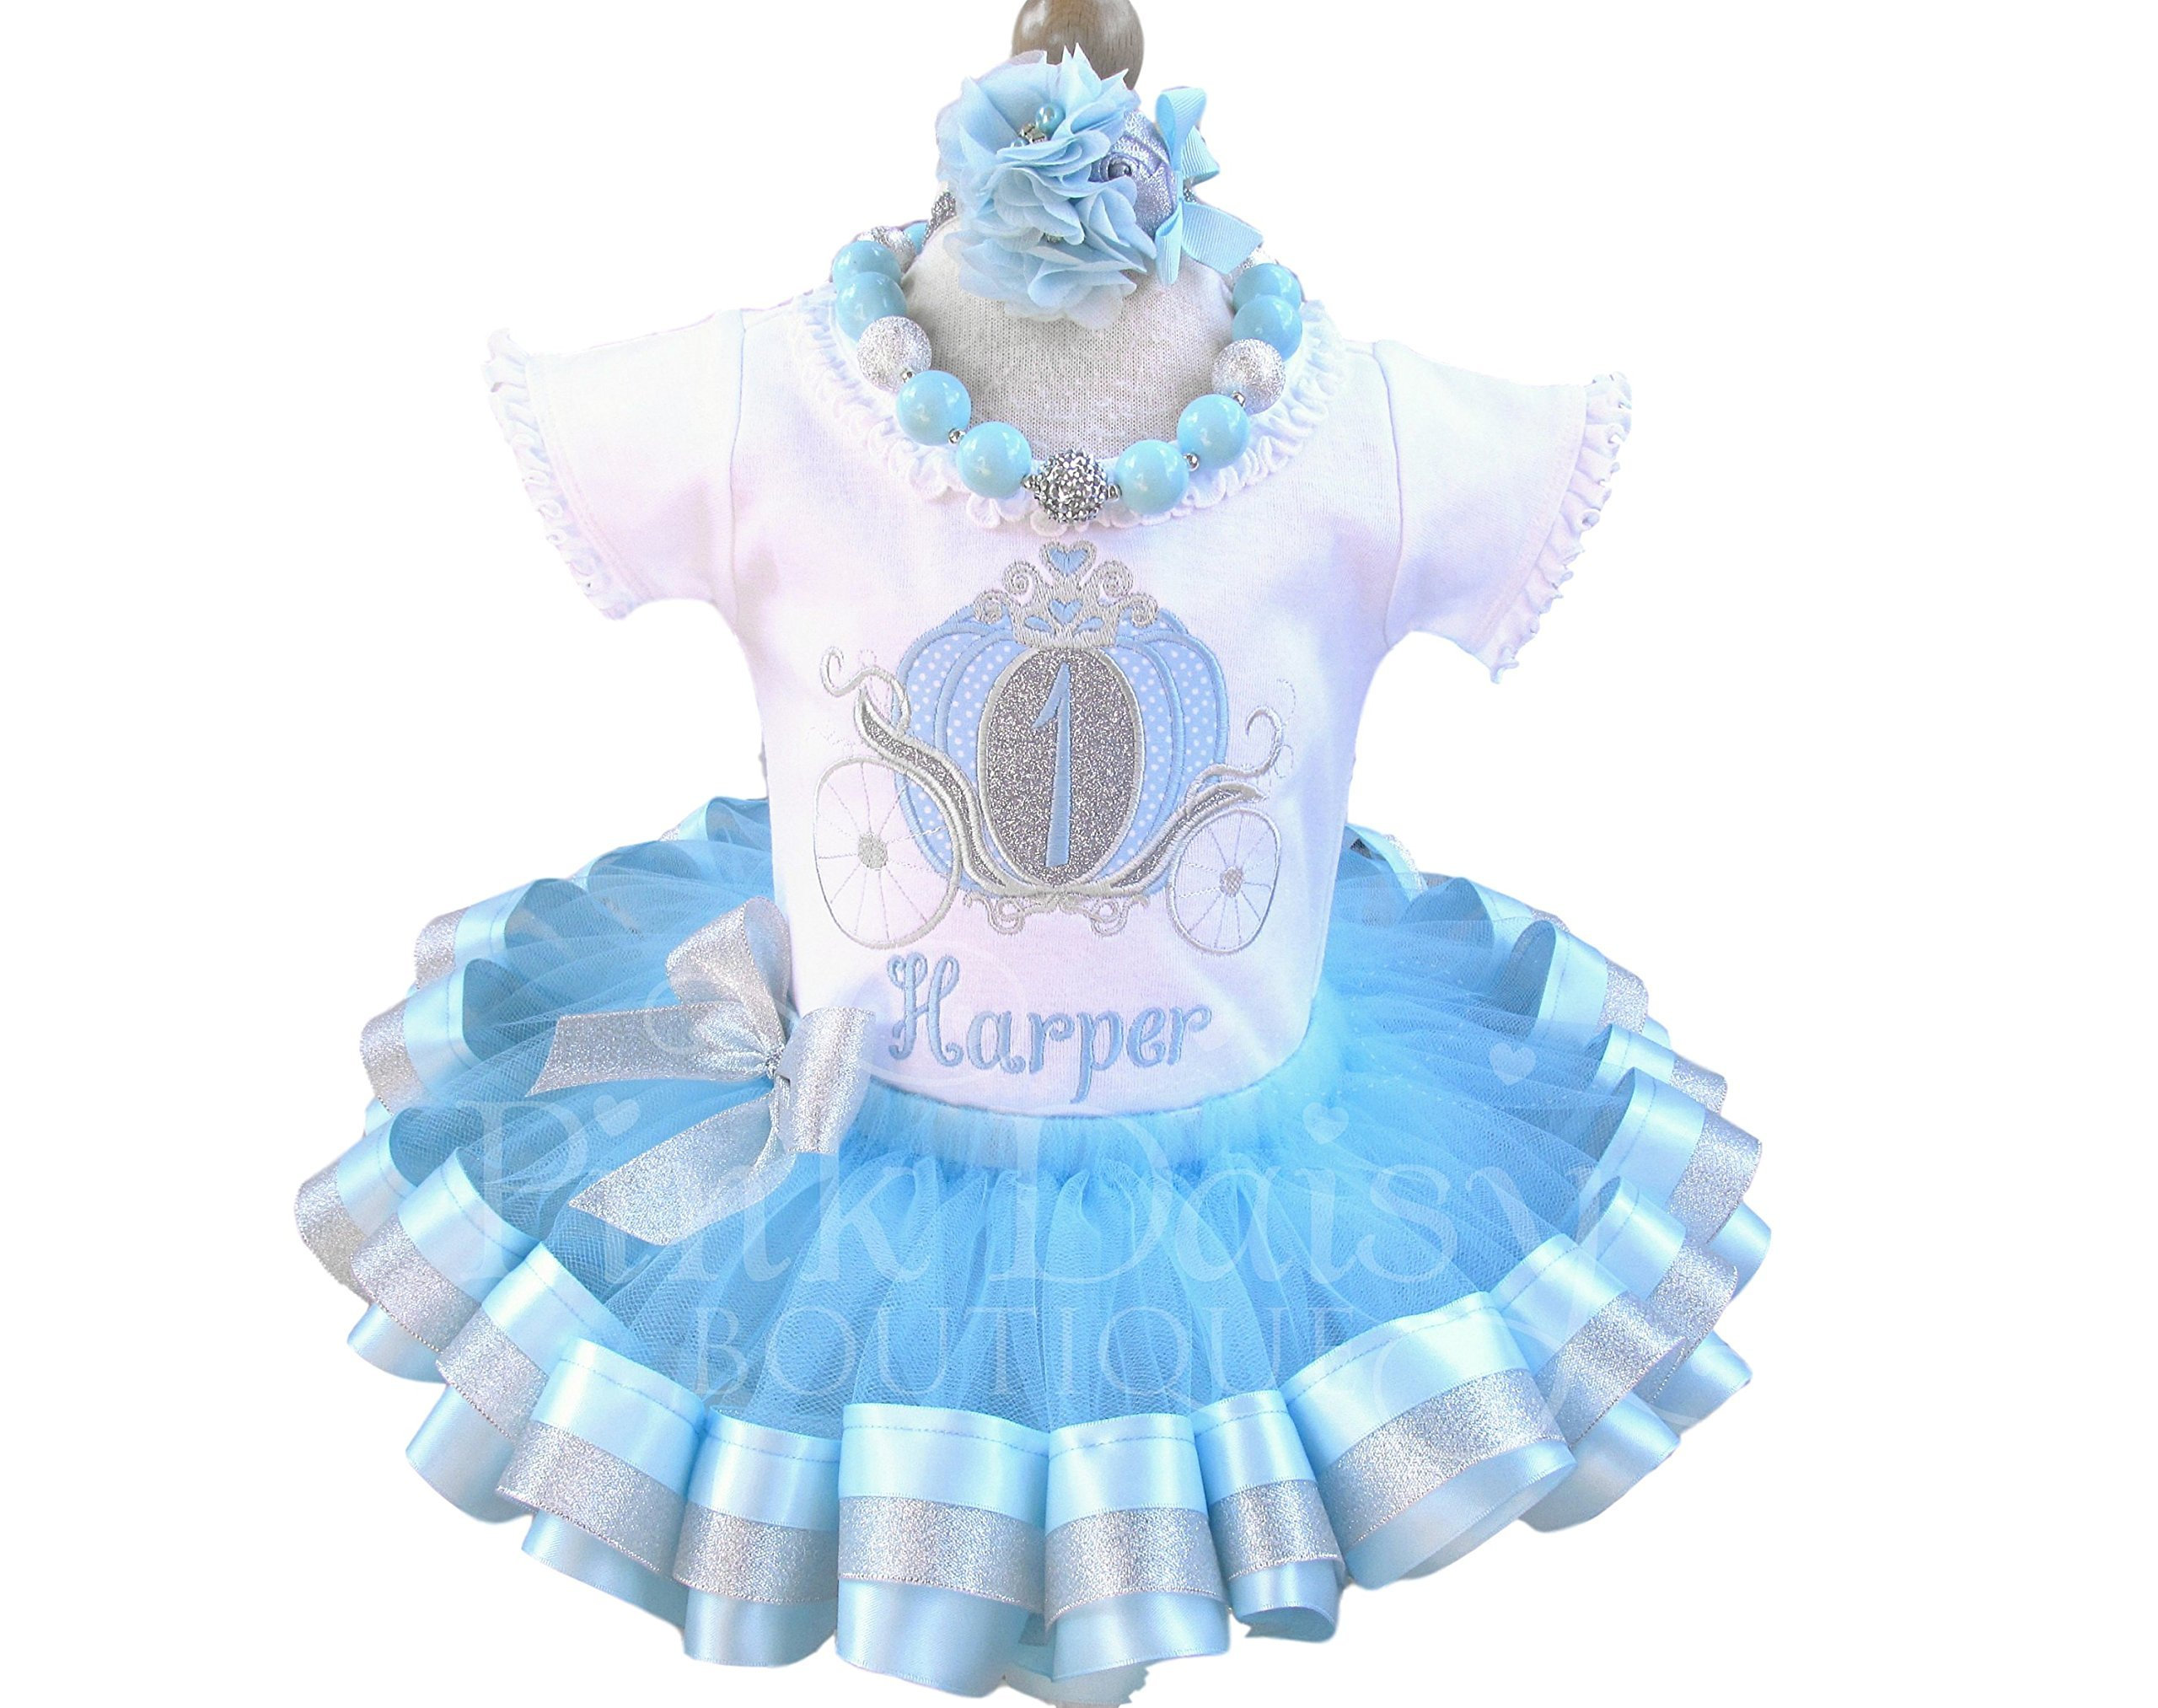 Princess Carriage Birthday Outfit in Blue and Silver with Personalized Shirt and Ribbon Trim Tutu